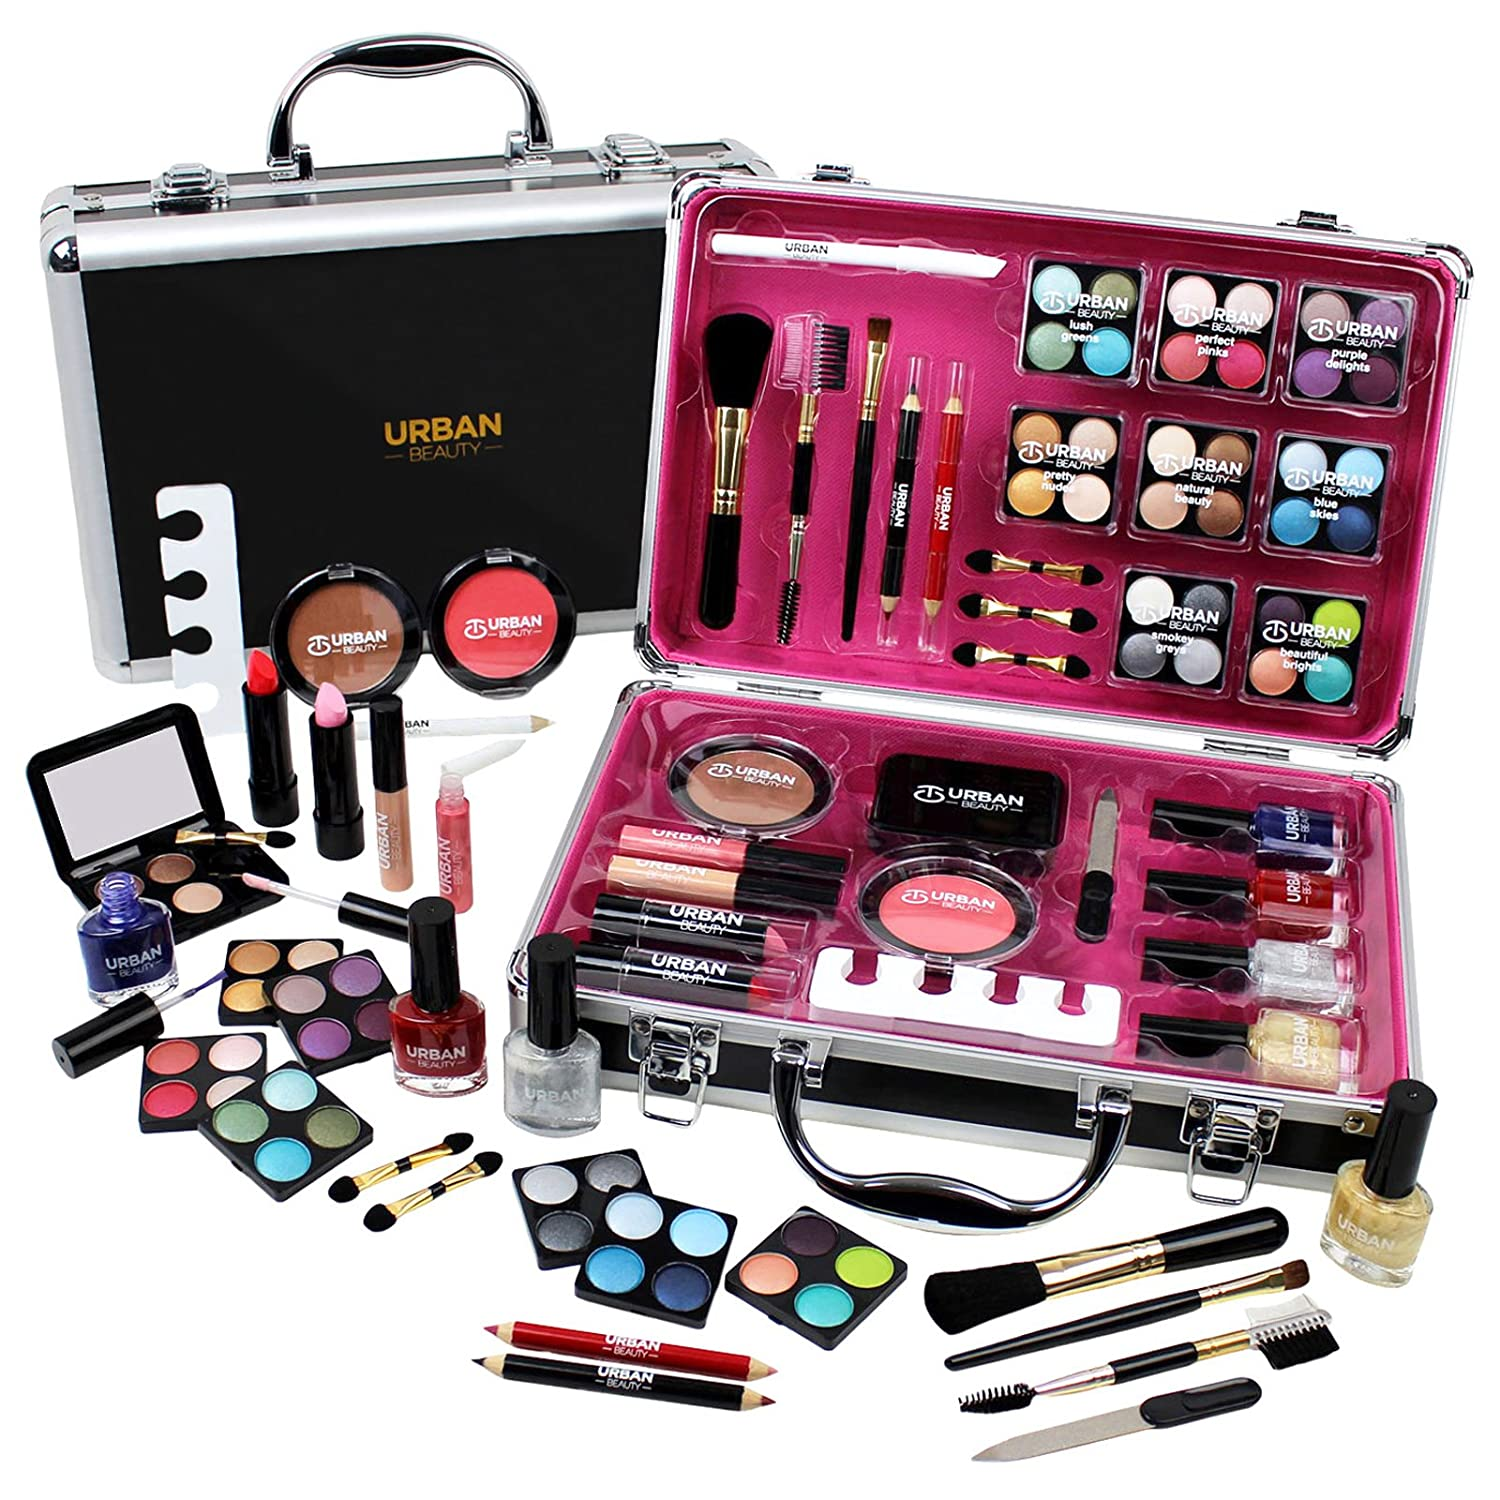 Marvelous Amazon.com : Professional Vanity Case Cosmetic Make Up Urban Beauty Box  Travel Carry Gift Set By Urban Beauty : Beauty